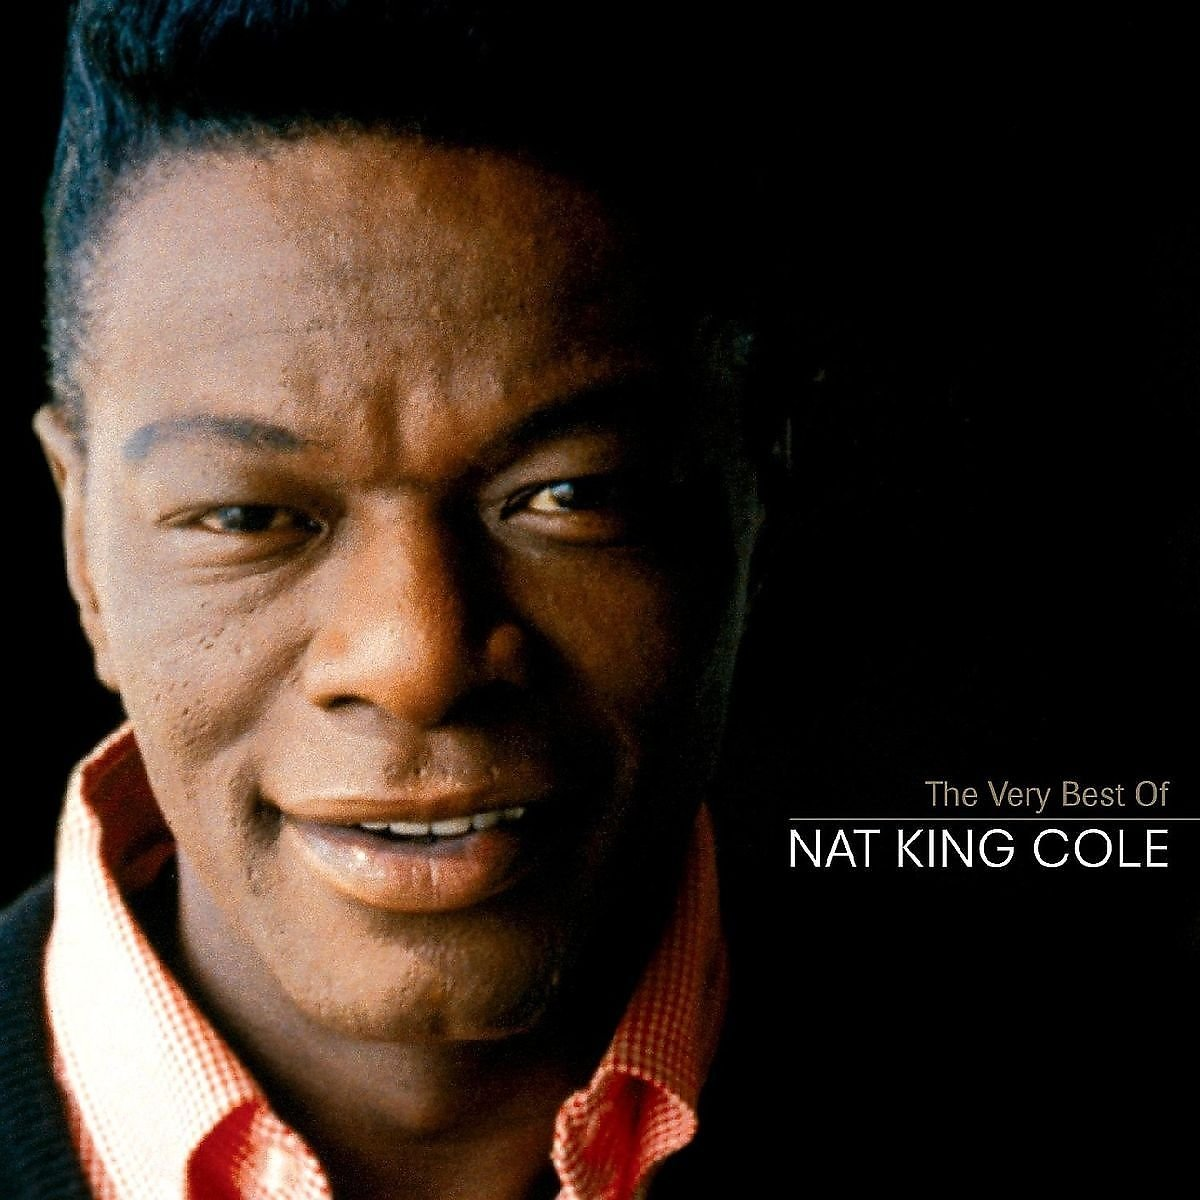 The Very Best Of Nat King Cole by COLE,NAT KING